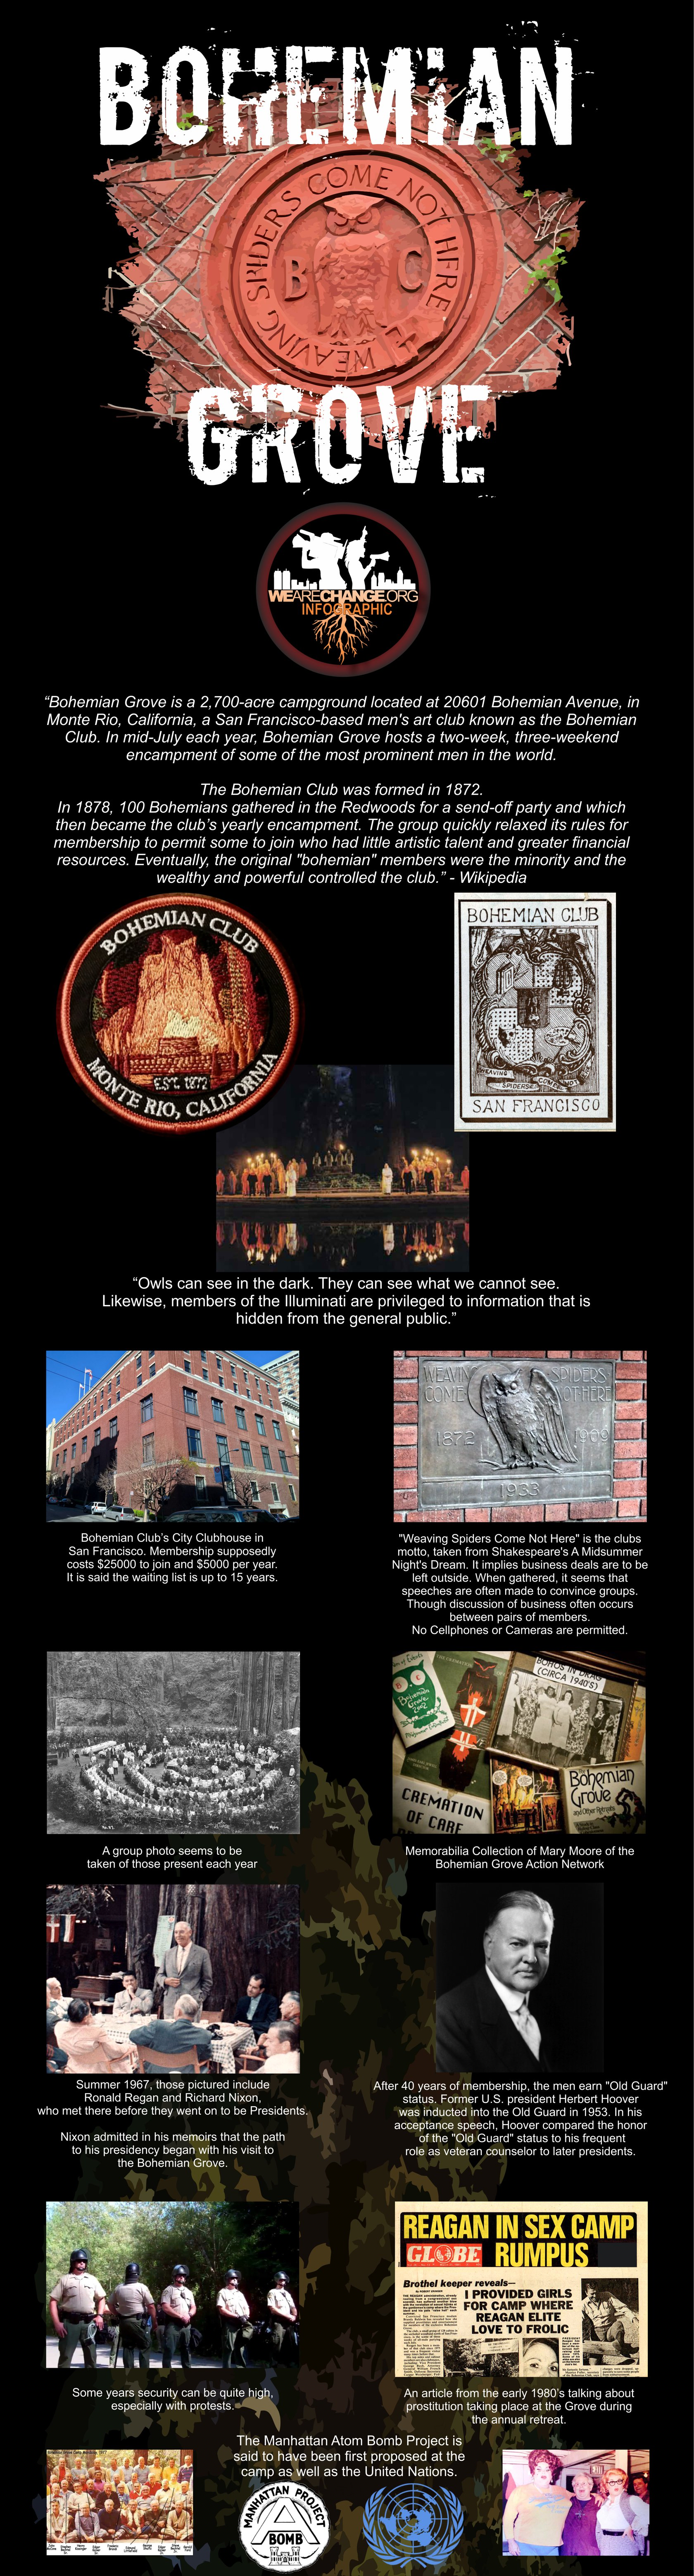 Infographic: Inside Bohemian Grove